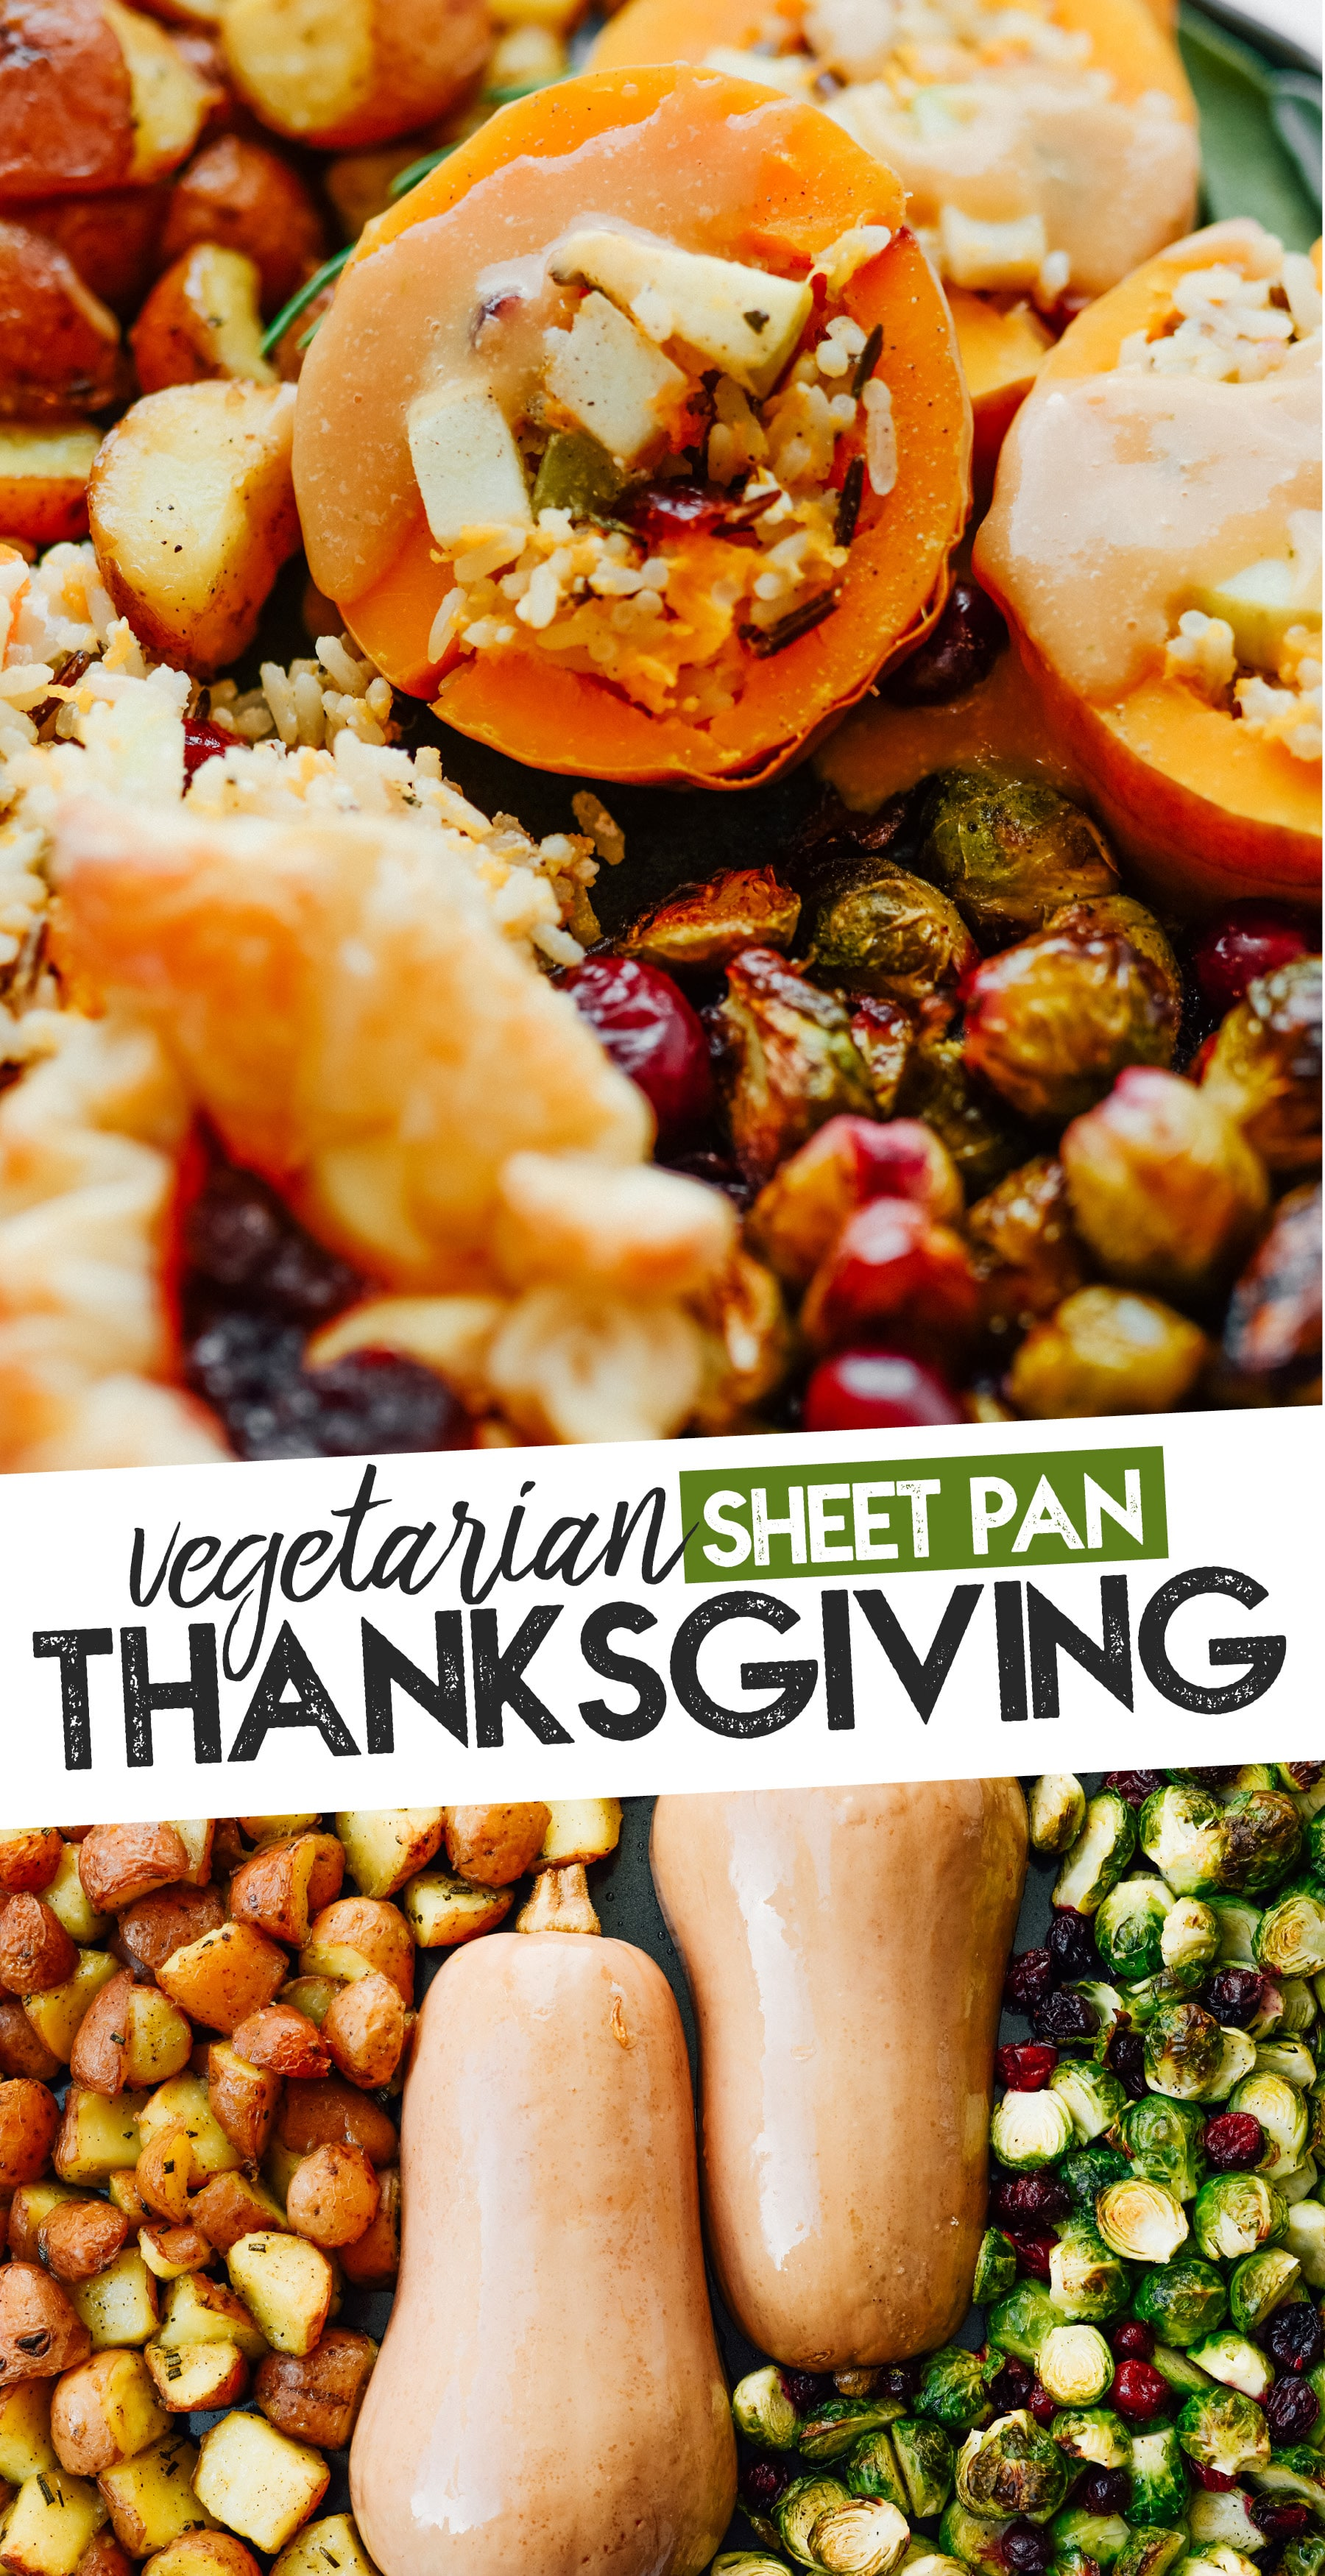 This full vegetarian Thanksgiving dinner meal plan has everything you want in an easy Thanksgiving meal, complete with a beautiful stuffed butternut squash centerpiece! This Thanksgiving meal can be made on a sheet pan. #thanksgivingrecipes #vegetarianthanksgiving #vegetarianrecipes #easythanksgiving #healthyrecipes #healthythanksgiving #stuffedbutternut #christmasrecipes #christmasdinner #vegetarianchristmas